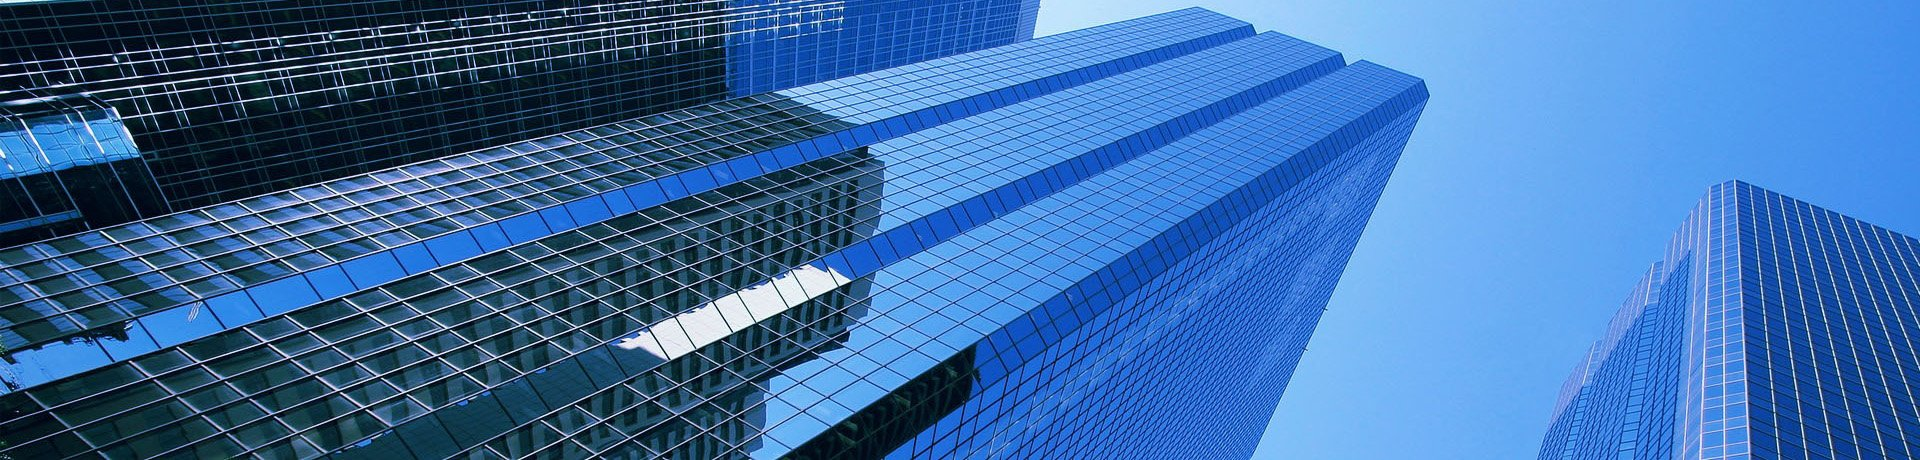 windows tint services for skyscraper building |Fire House Window Tint